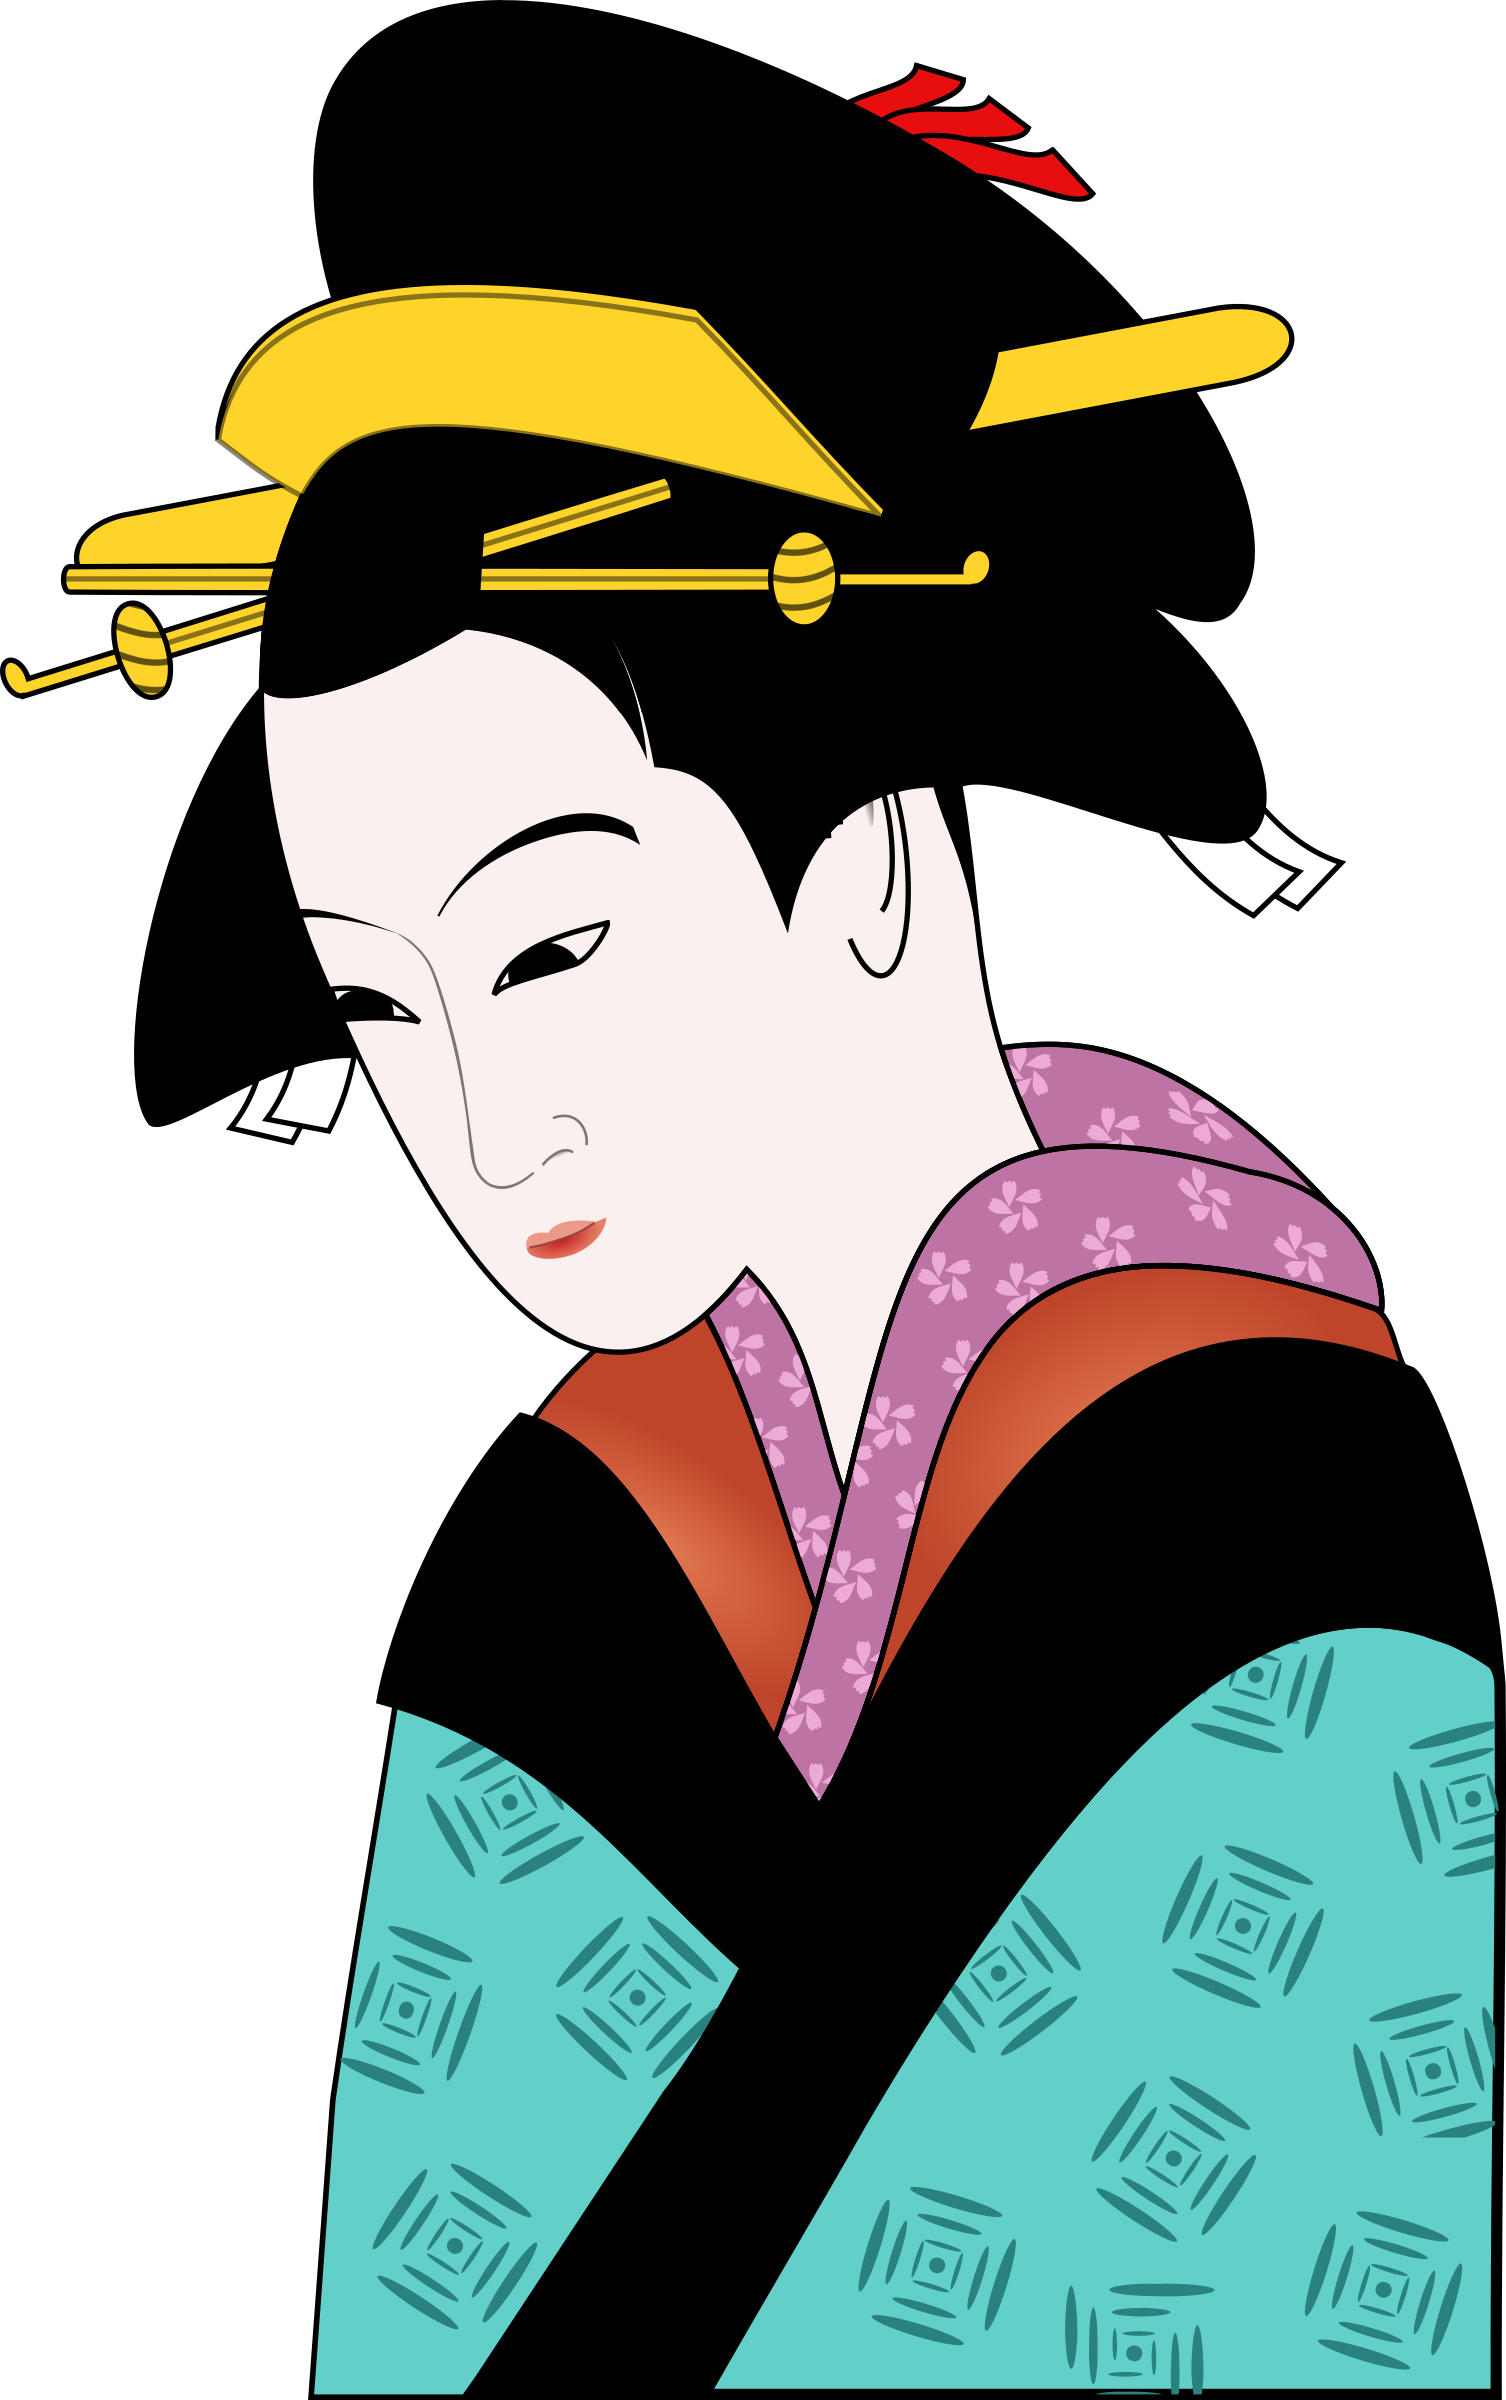 Traditional woman clipart free download Clipart - Woman in Kimono Simpler free download